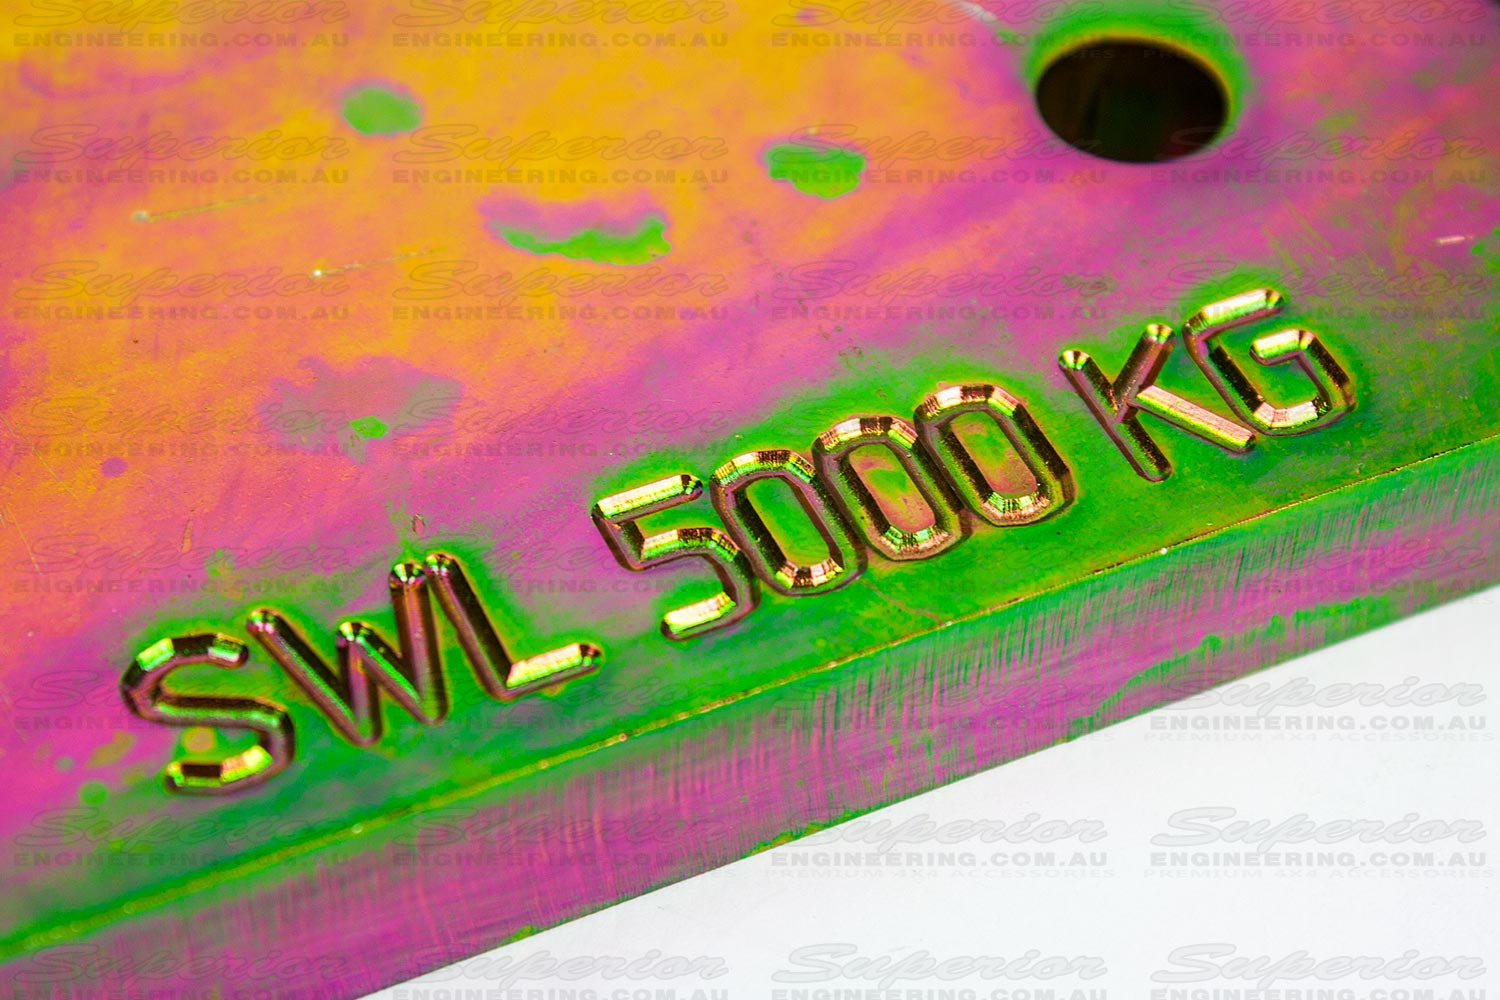 Closeup view of the 5000 kg safe working load text engraved onto the side of the Patrol rated towing point